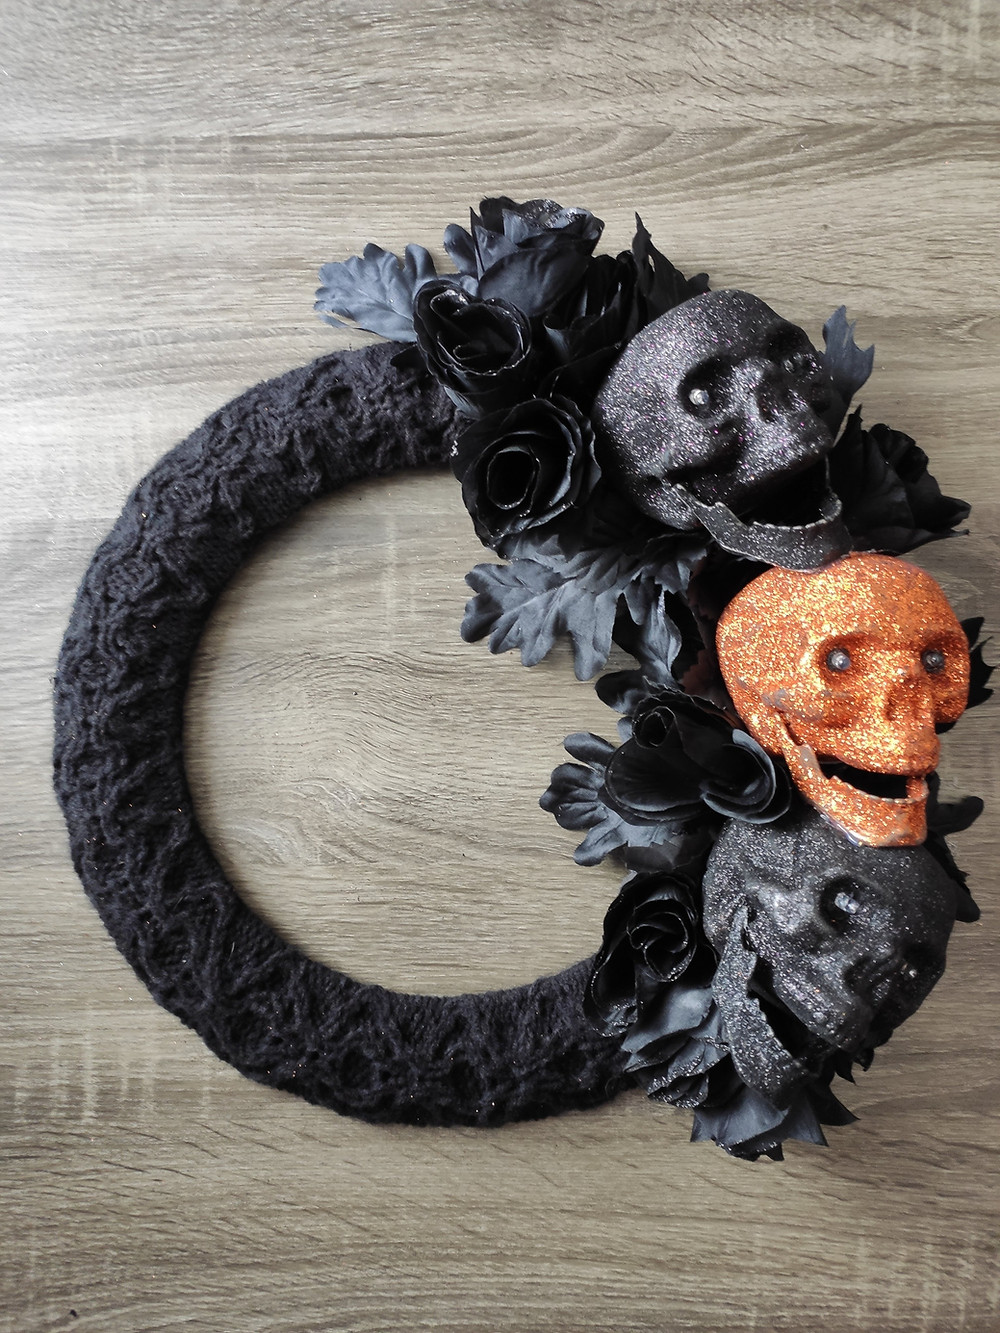 finished wreath. black knit cabled fabric covers about two thirds of the frame. The other third has three glittery skulls surrounded by black flowers.